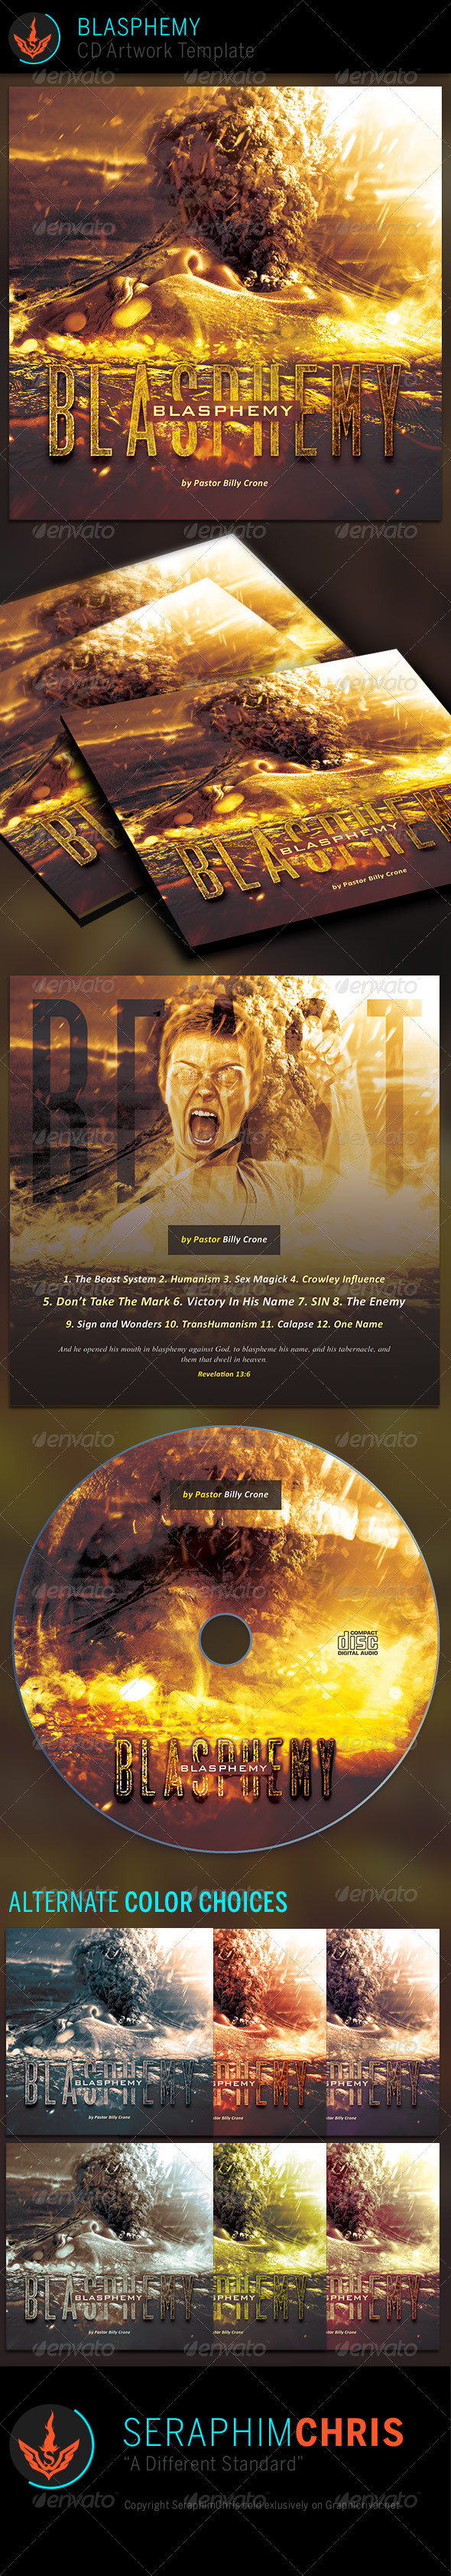 GraphicRiver Blasphemy CD Artwork Template 7500711